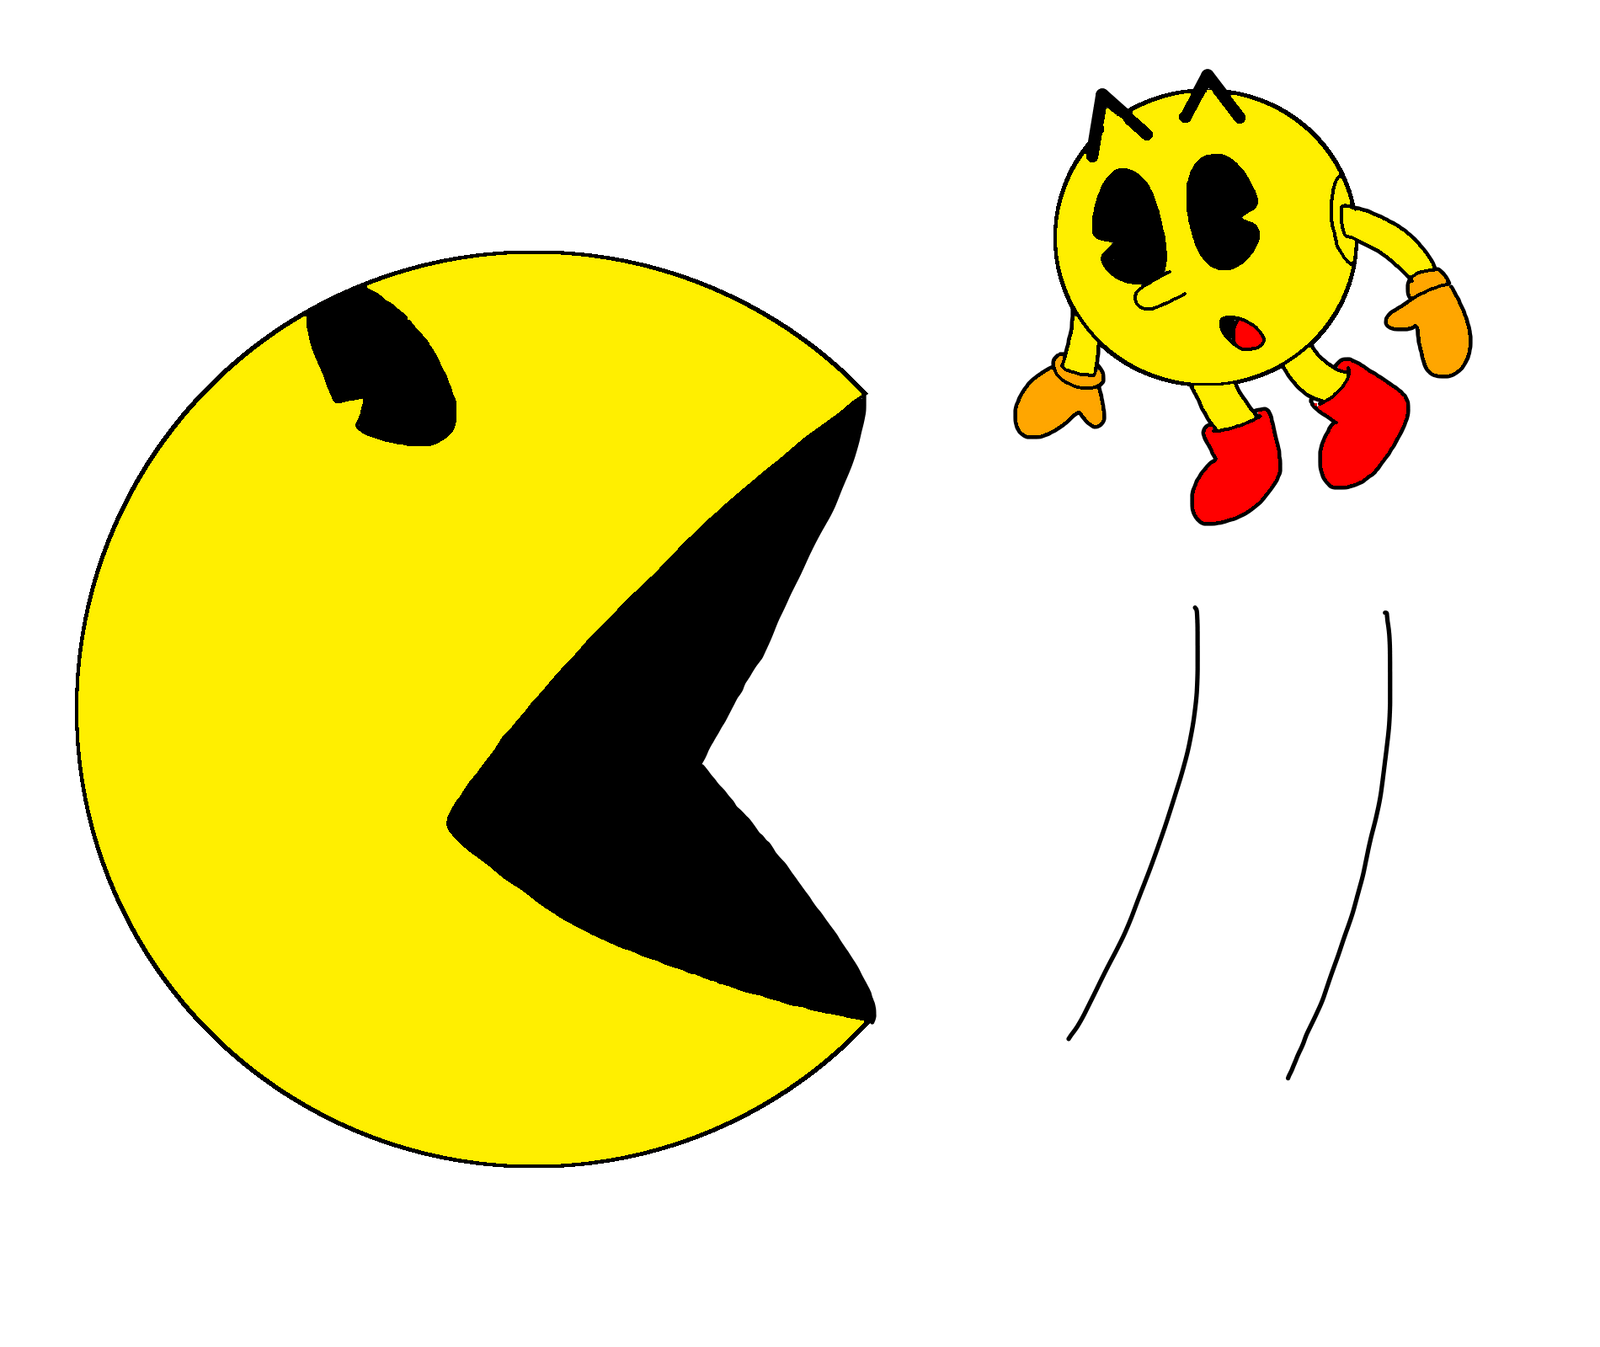 Pac-Man vs. Pixels Pac-Man by MarcosPower1996 on DeviantArt